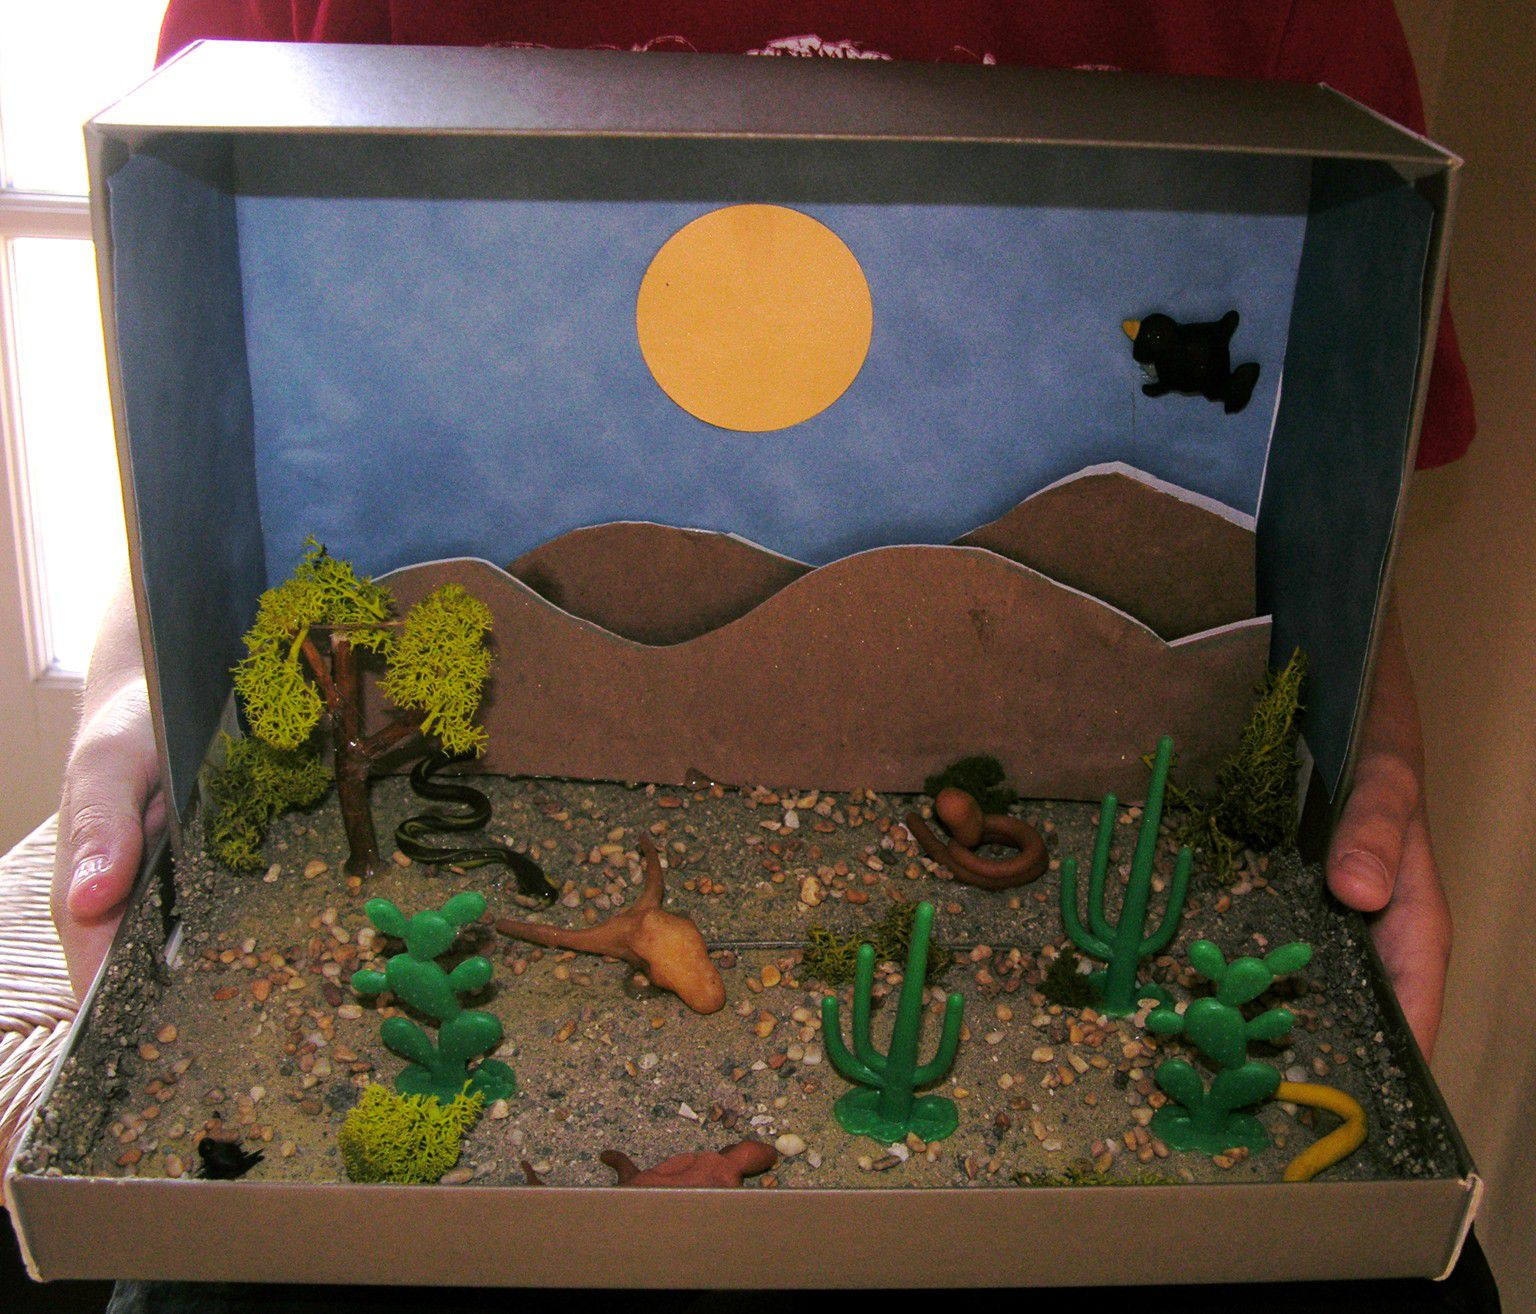 30 Shoe Box Craft Ideas: How To Make A Desert Diorama Craft